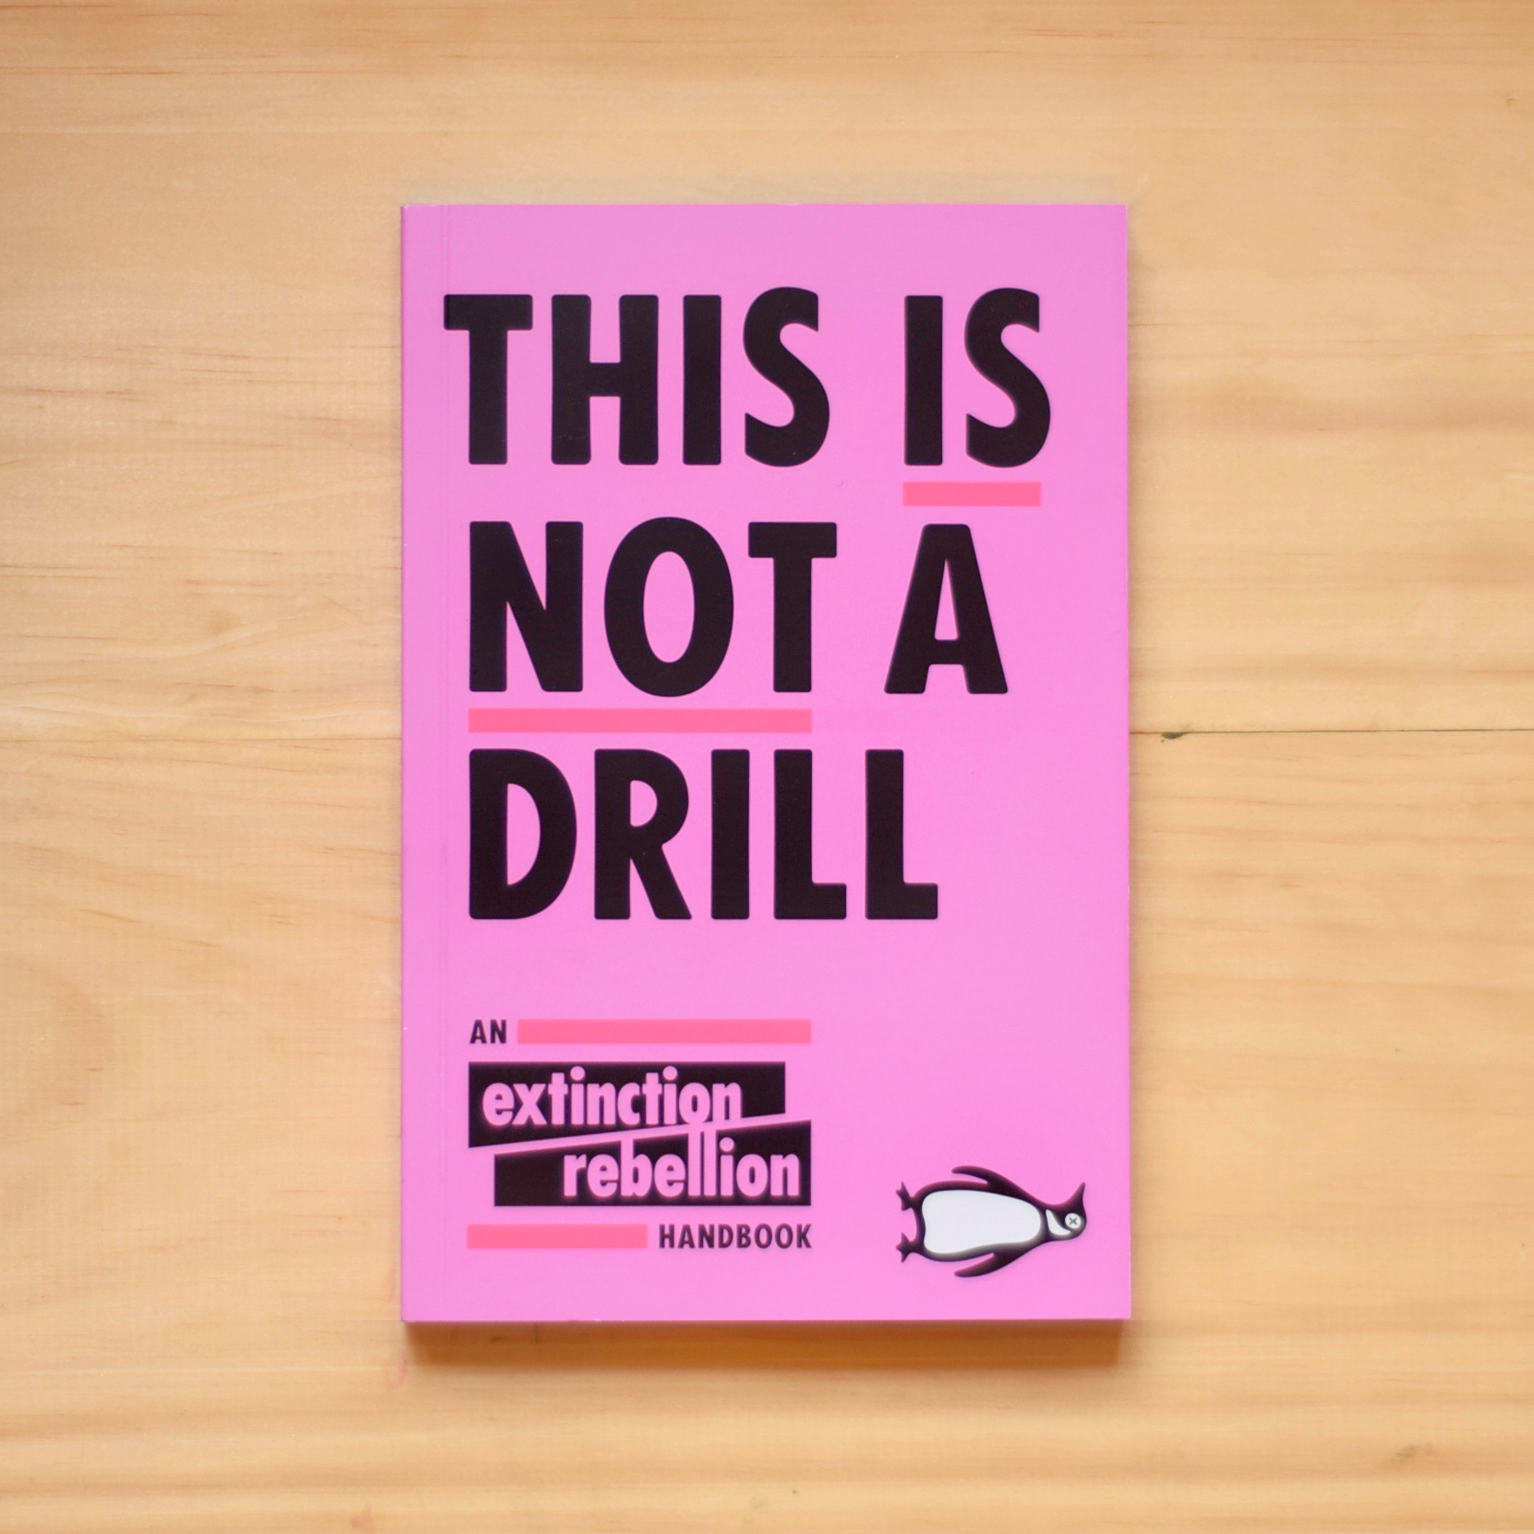 #4: This Is Not A Drill: An Extinction Rebellion Handbook - By Extinction RebellionTime is running out. This is Not a Drill is the handbook of truth and action, a guide to tackling climate change and joining a growing number of activists rising to meet the ecological emergency. The book includes instructions, interviews, personal accounts and posters, scientific analysis and step-by-step guides to rebellion. Whether you're planning on blocking a road, expecting to spend a night in prison, or simply wanting to learn more about Extinction Rebellion, this book is for you. This book is for everyone.